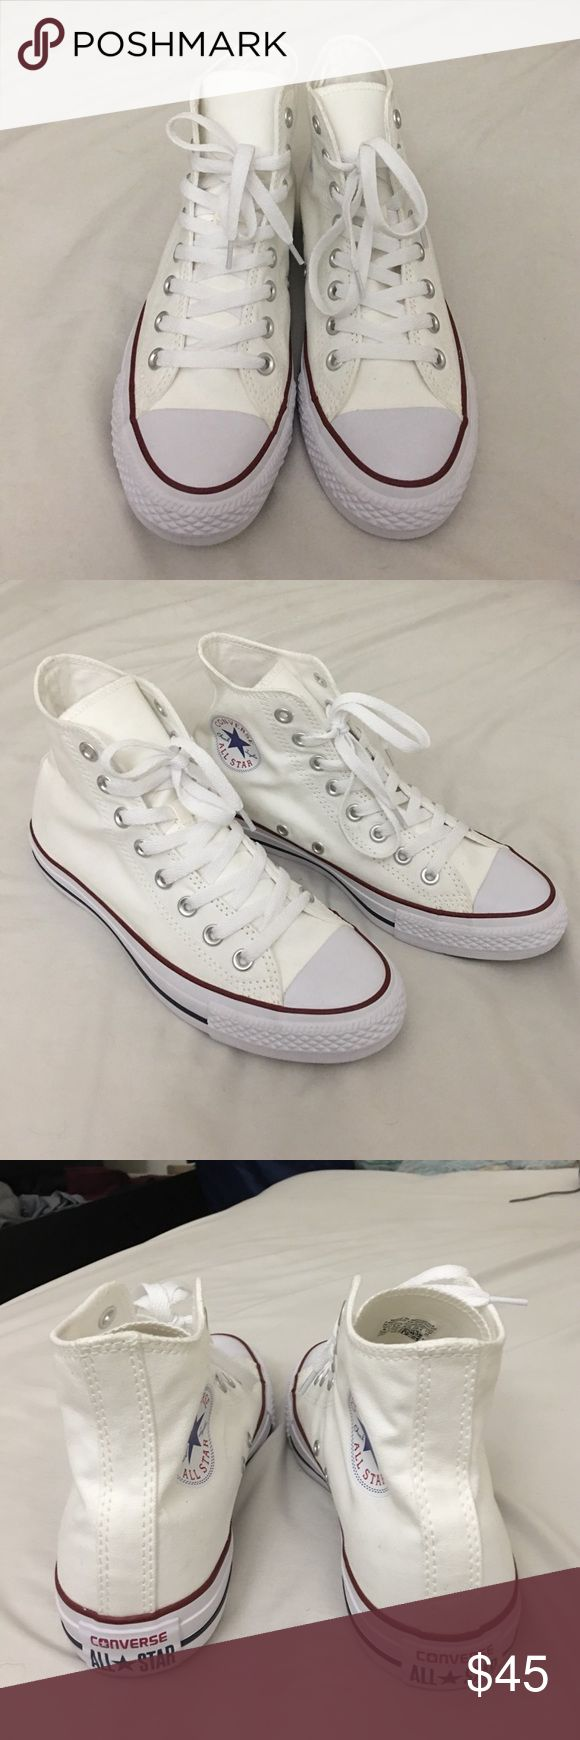 Converse Chuck Taylor All Star High Top Brand new never used High Top Converse. Unisex, 8.5 for women size and 6.5 for men. Converse Shoes Sneakers